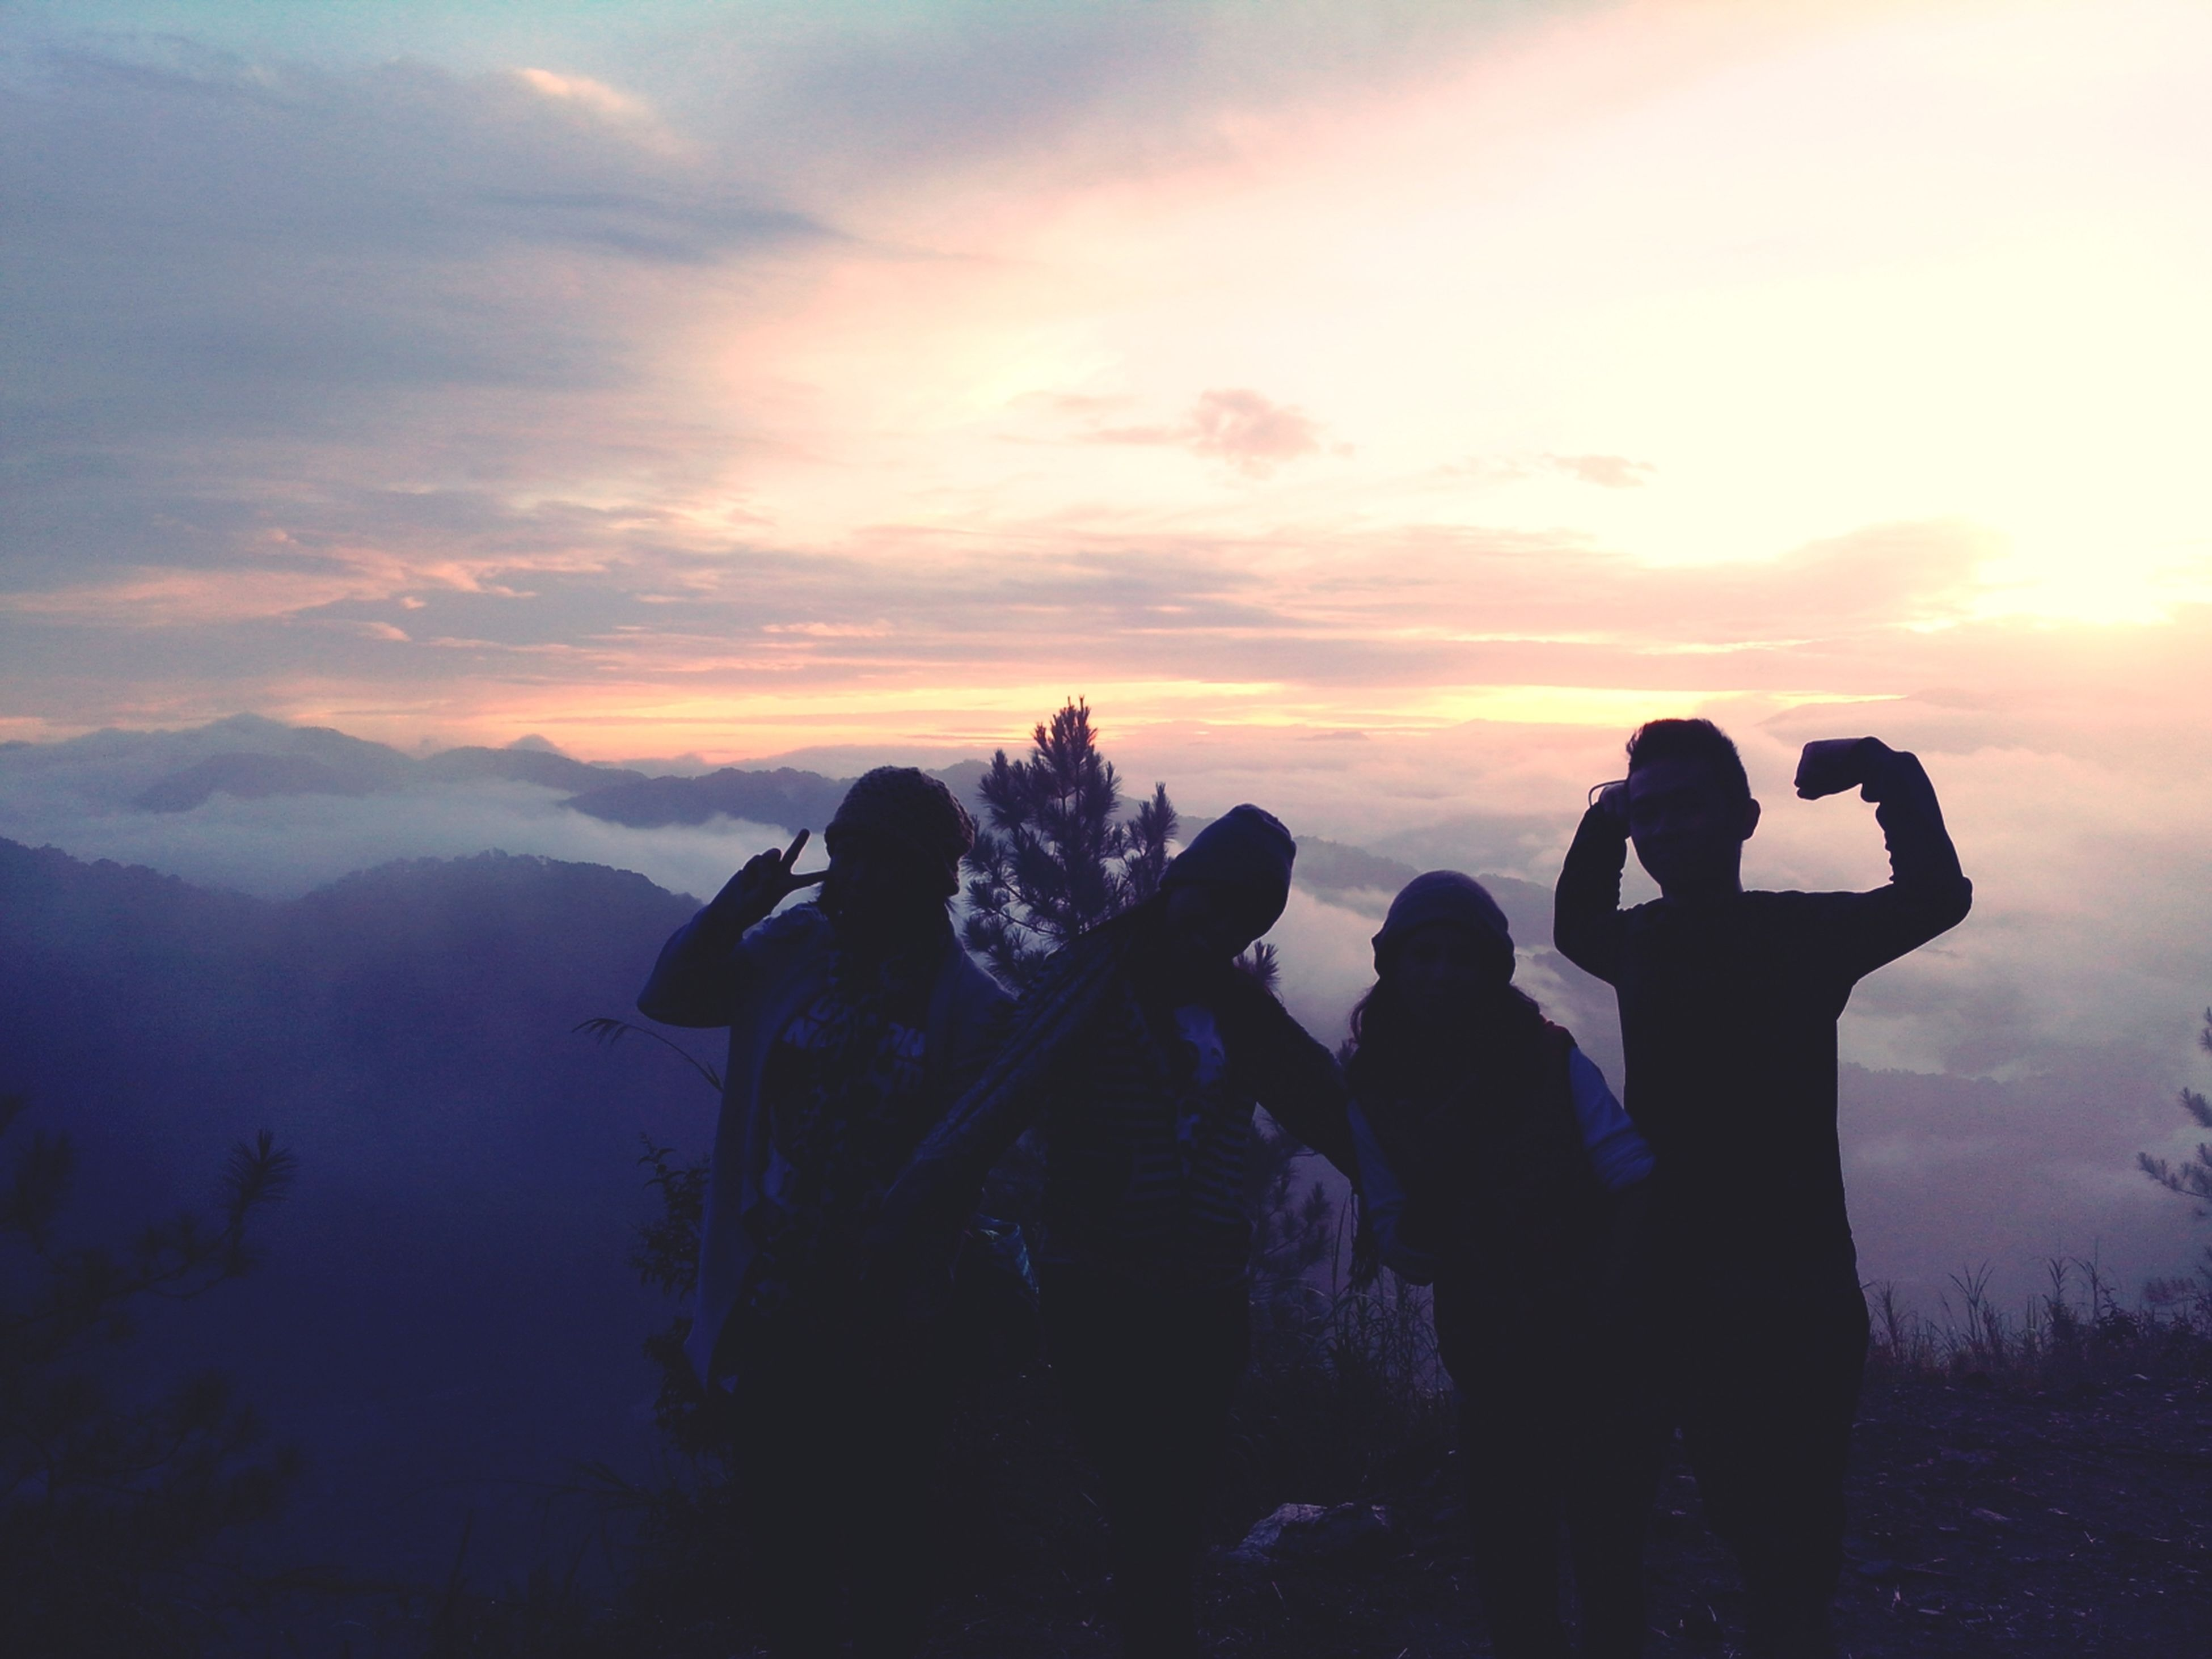 sunset, lifestyles, sky, leisure activity, silhouette, men, orange color, cloud - sky, standing, beauty in nature, person, scenics, nature, tranquility, tranquil scene, mountain, love